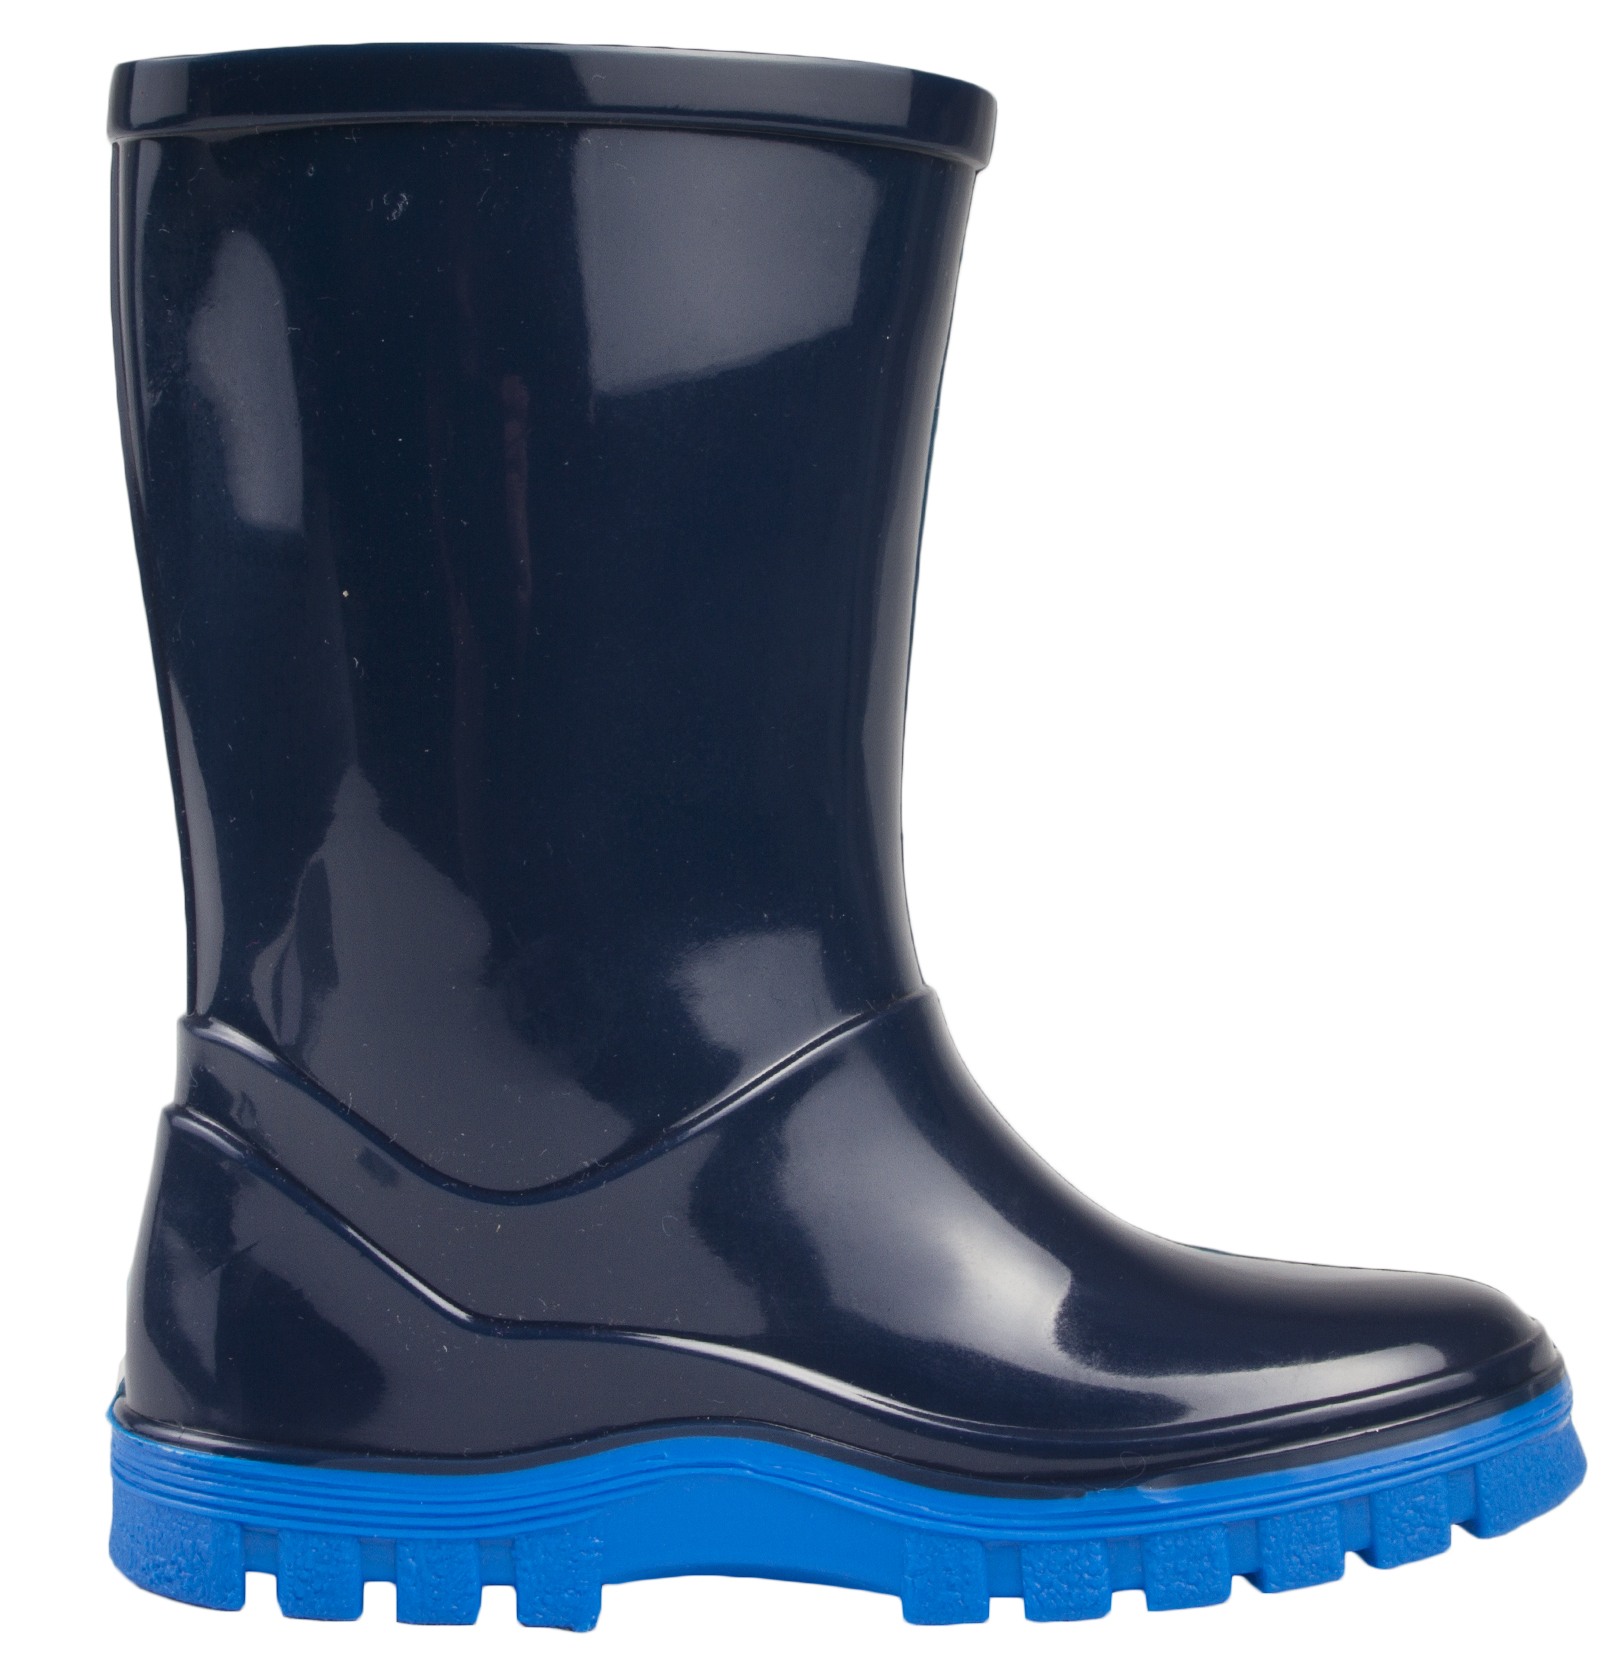 Pokemon Wellies Boys Blue WELLINGTON Lluvia Botas De Nieve Pikachu Charmander Tamaño